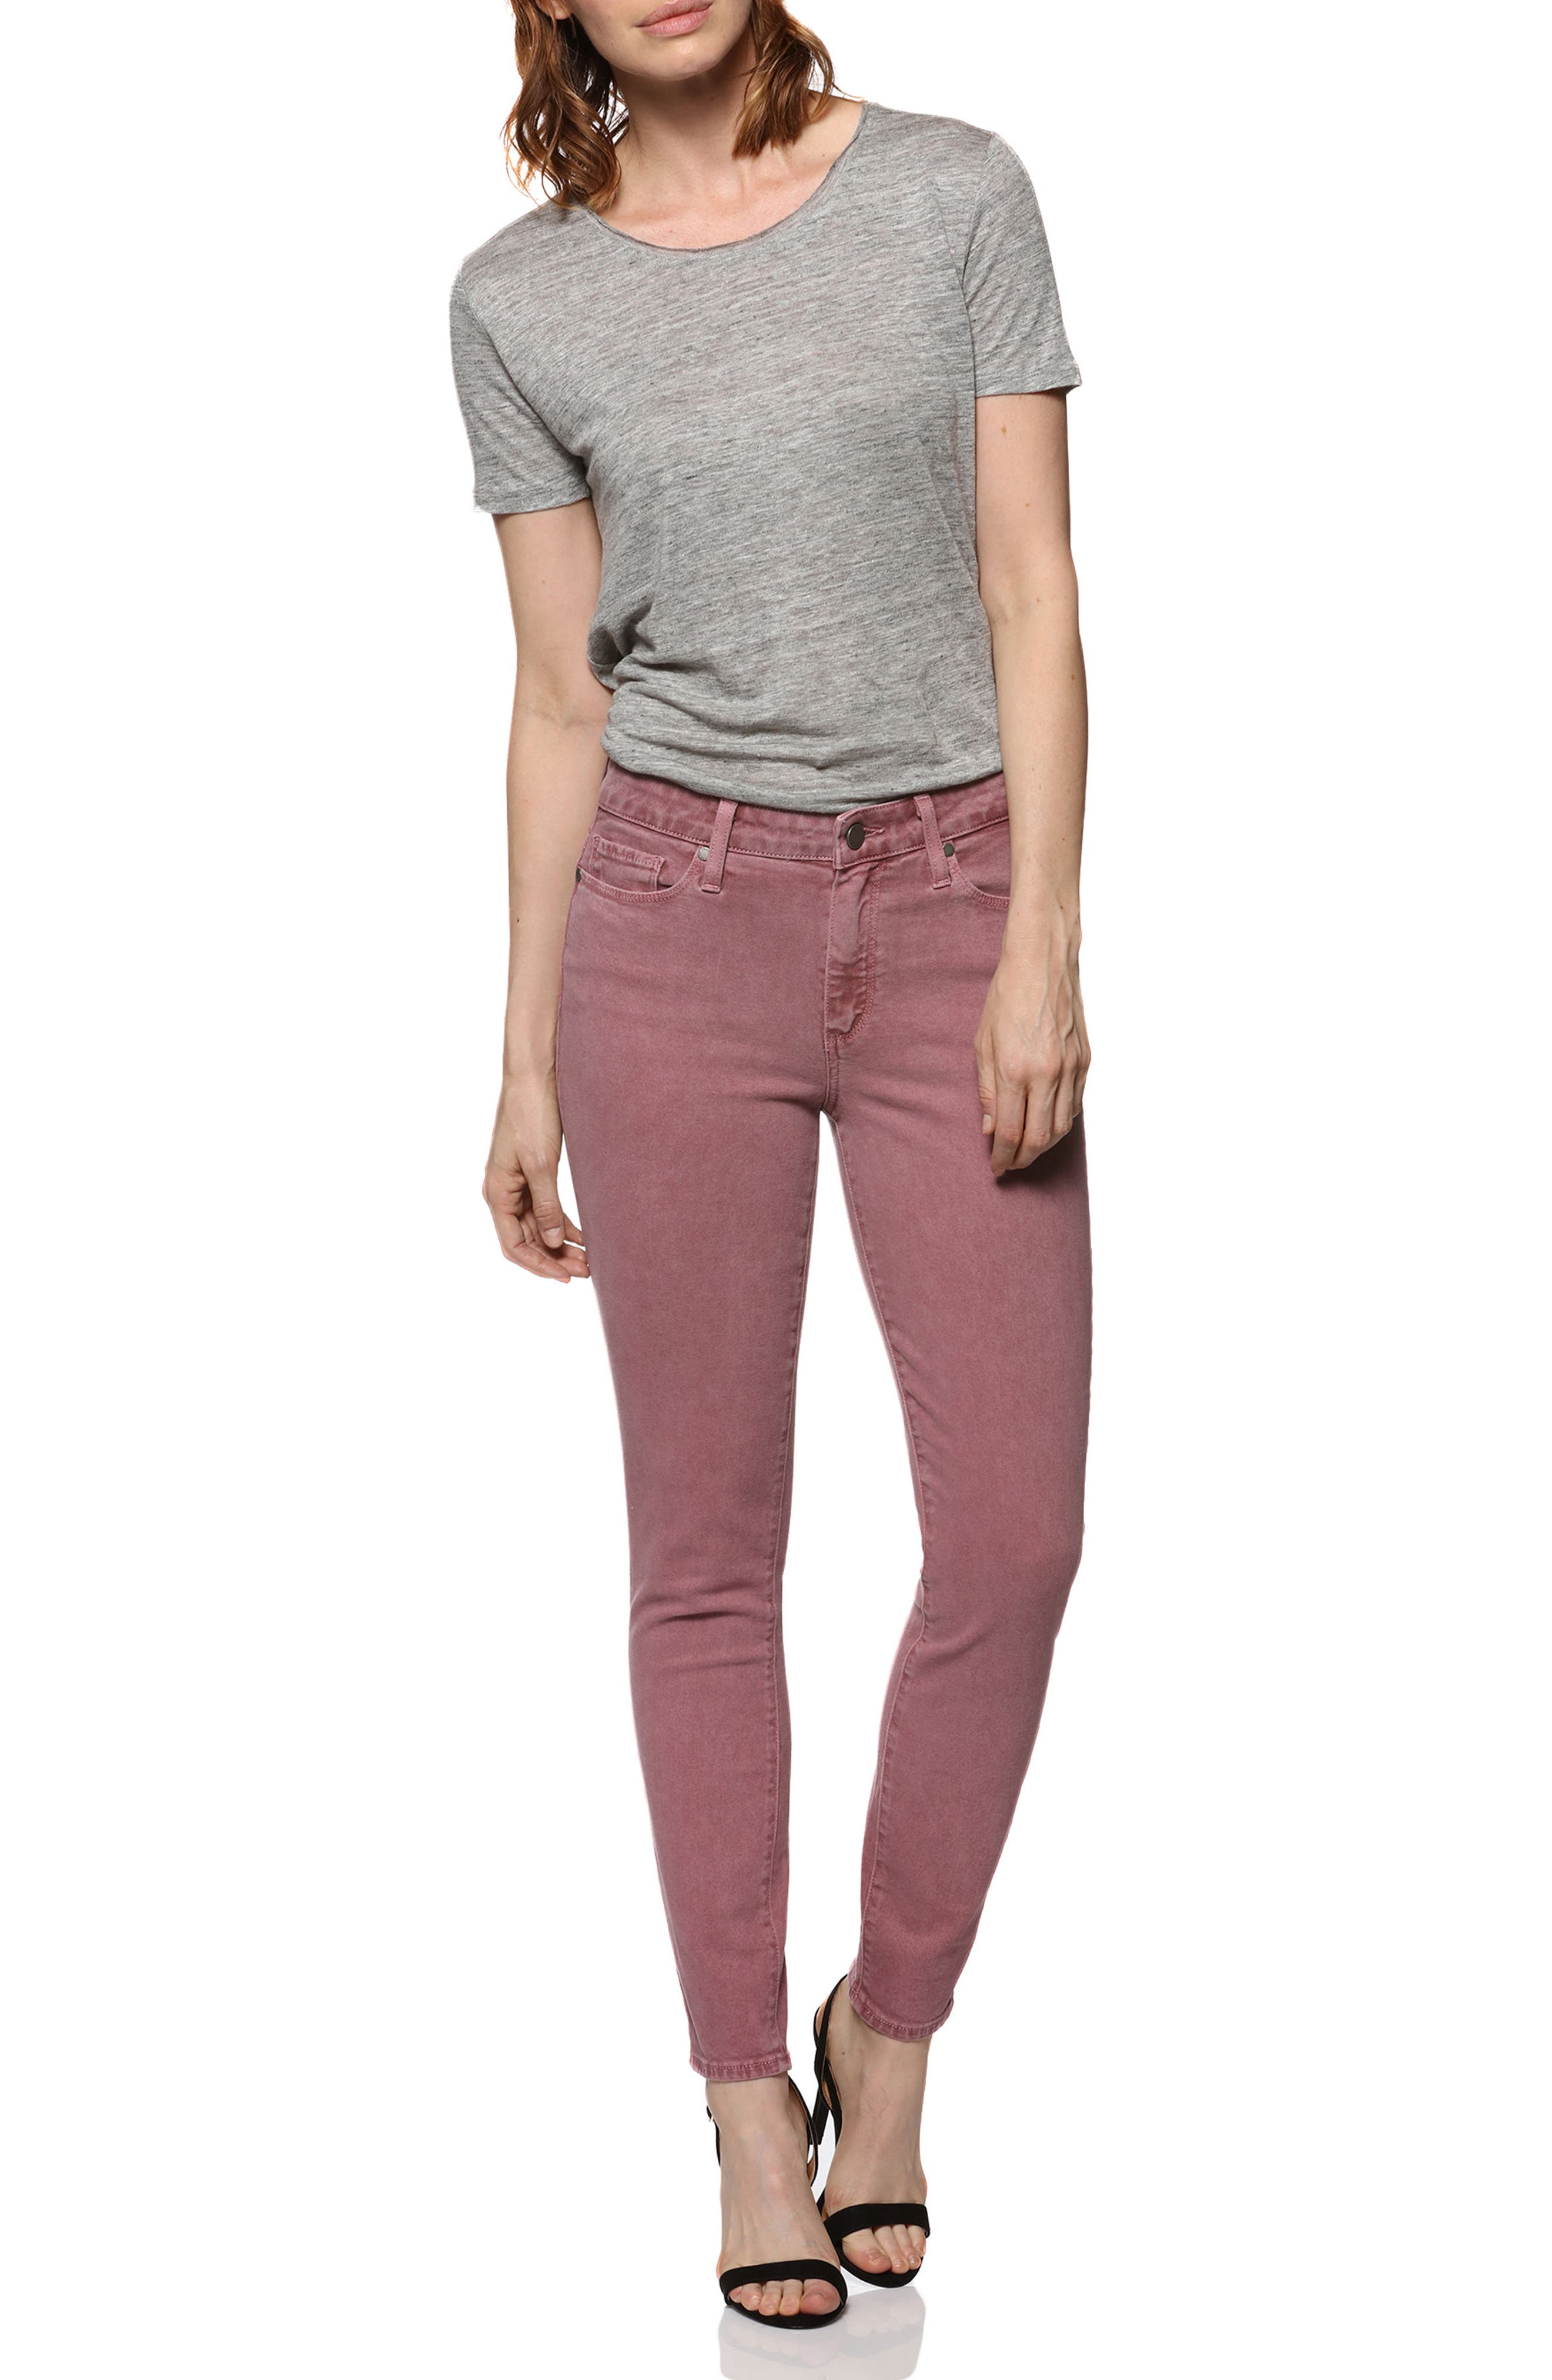 Hoxton High Waist Ankle Ultra Skinny Jeans,                             Alternate thumbnail 3, color,                             650